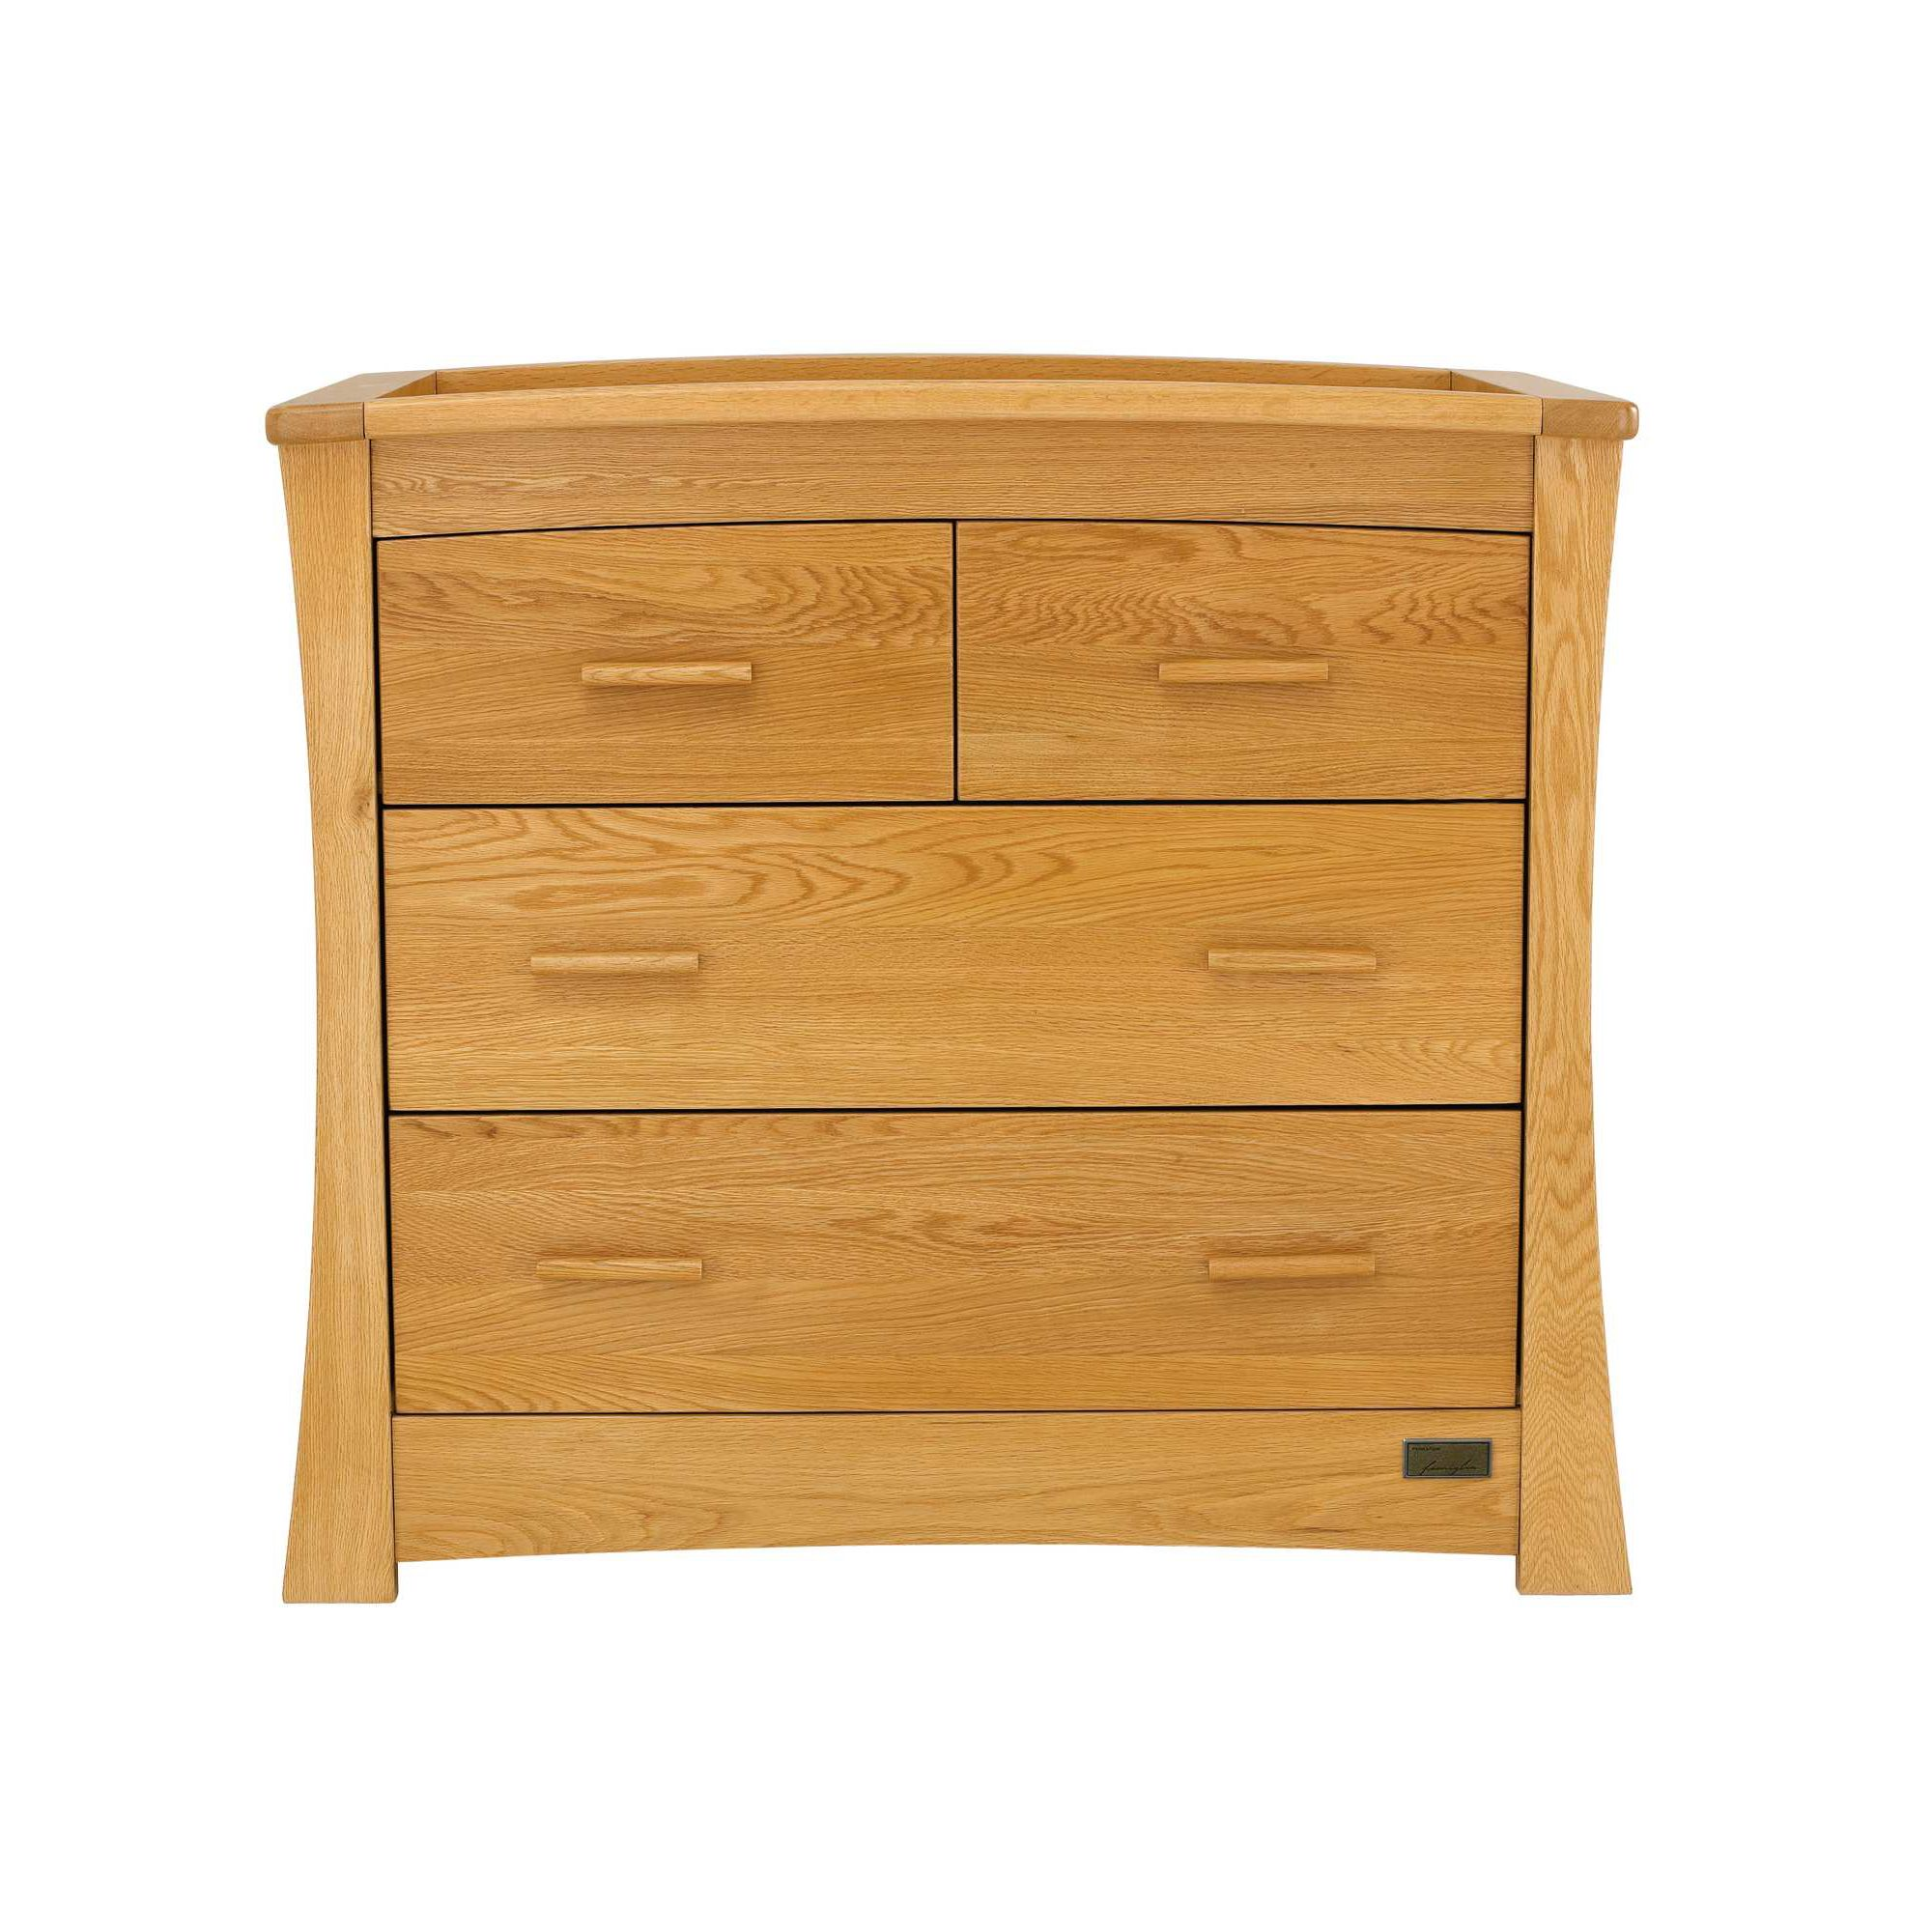 Mamas & Papas - Ocean Dresser with changer - Golden Oak at Tesco Direct